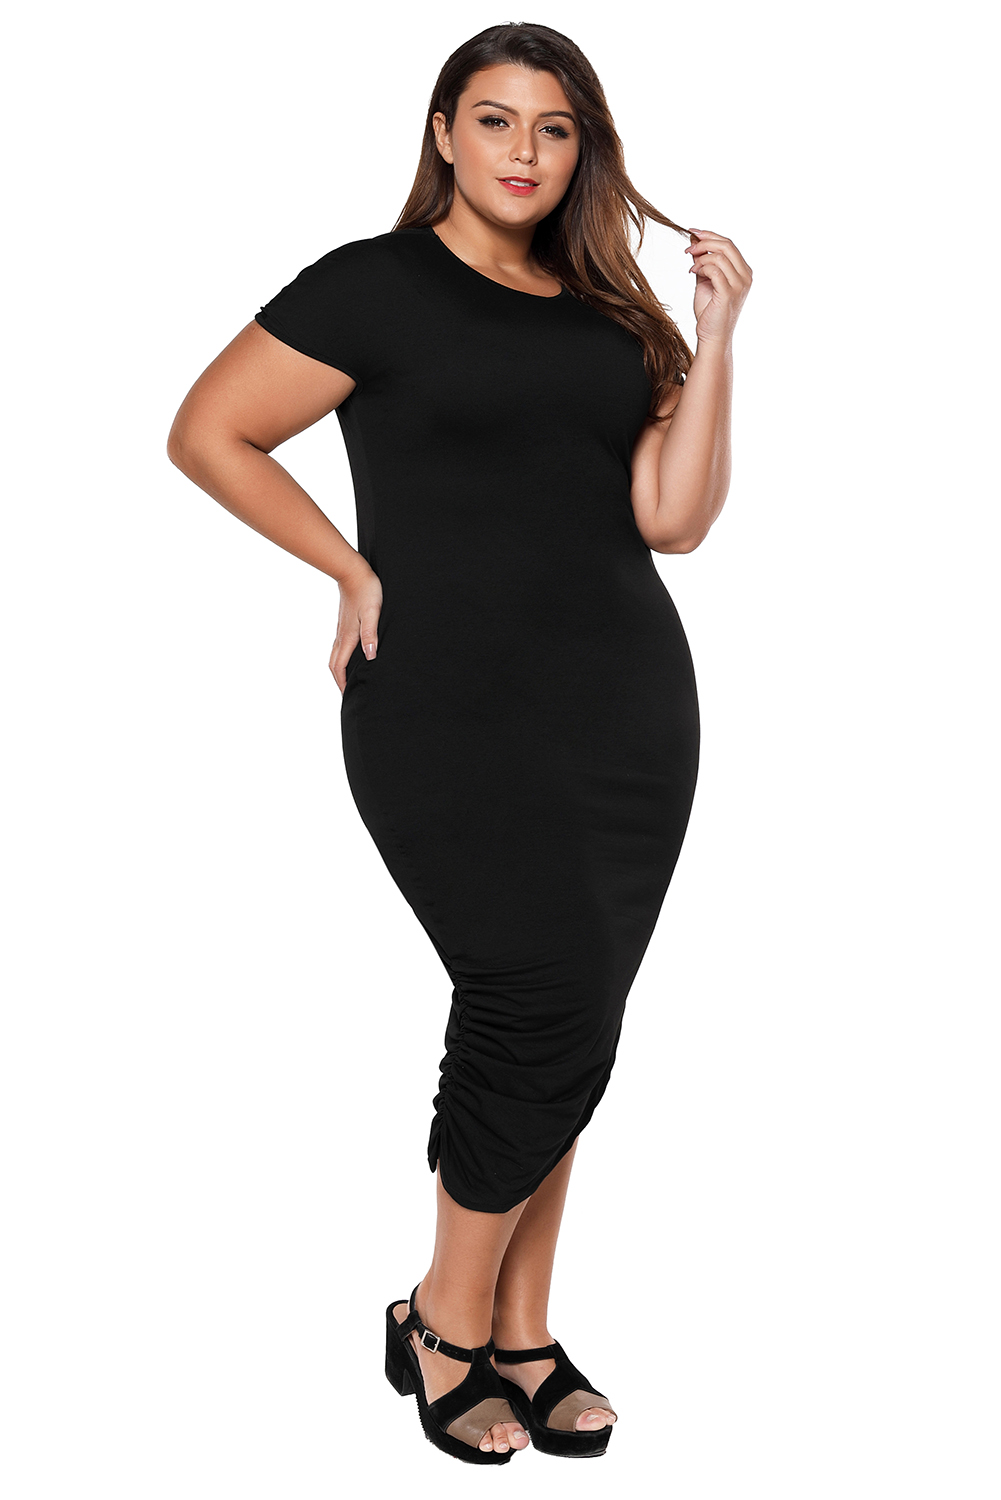 Short Sleeve Asymmetrical Hem Plus Size Women Dress High